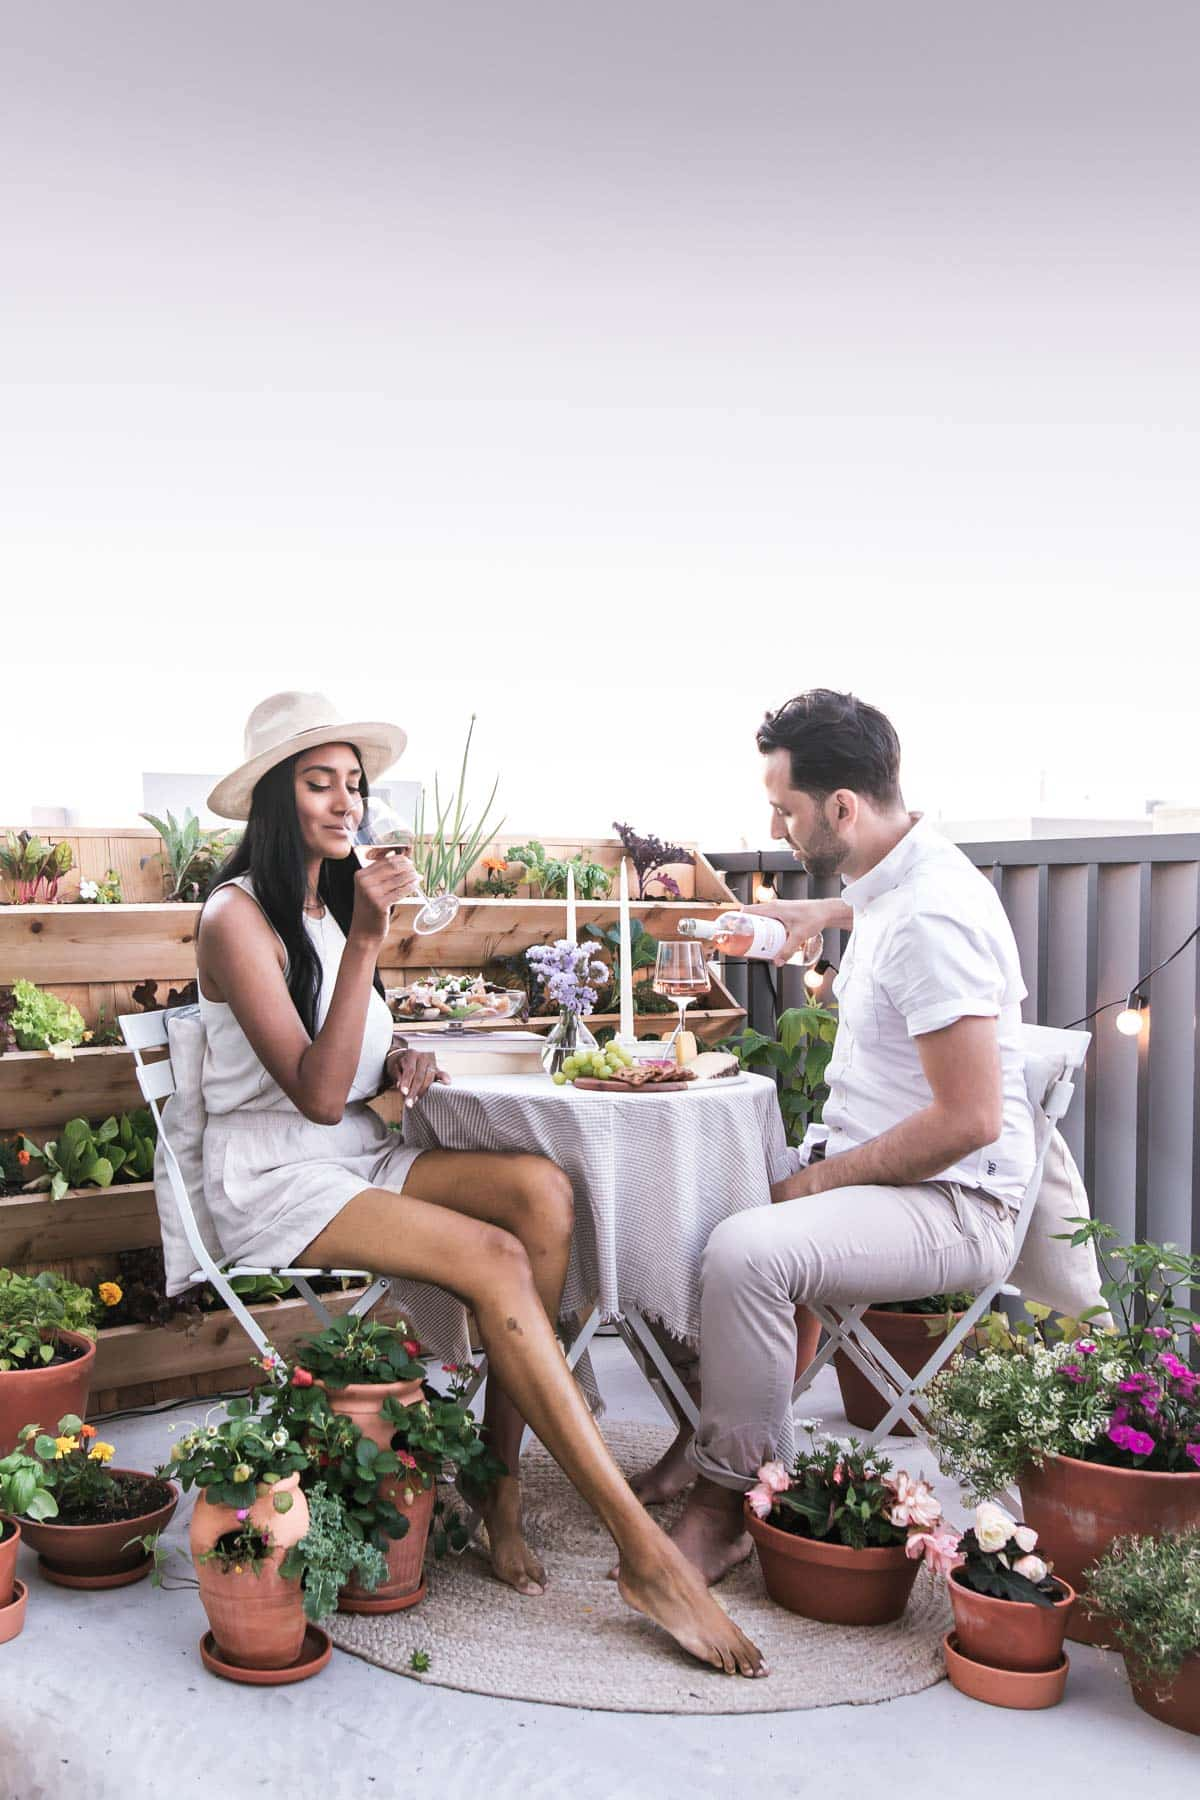 Mystique Mattai and Philip Lago enjoying rose wine in an al fresco dining setting surrounded by flowers in pots.